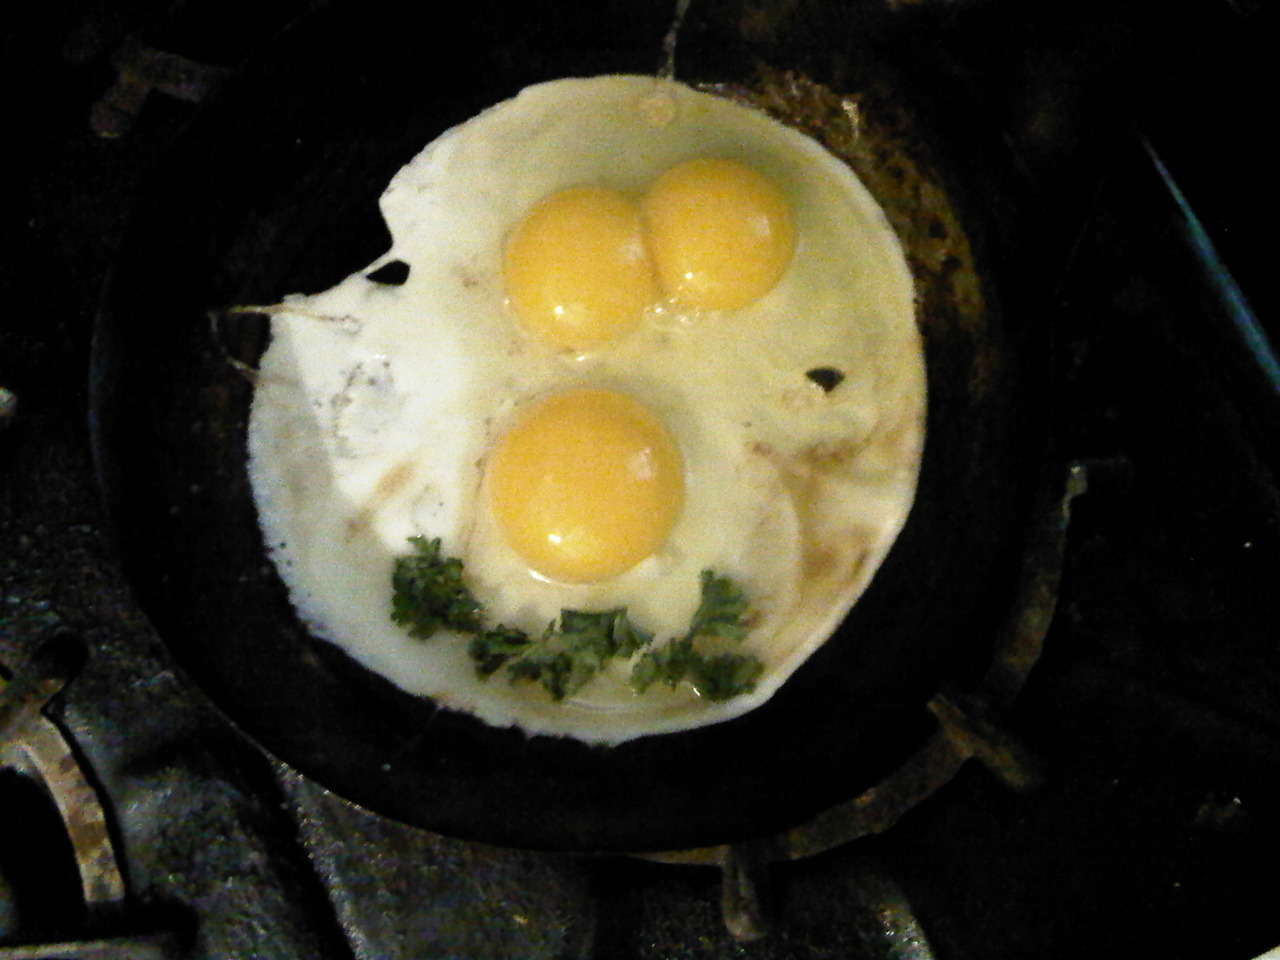 Two eggs. Three yolks. Anything is possible at Christmas.